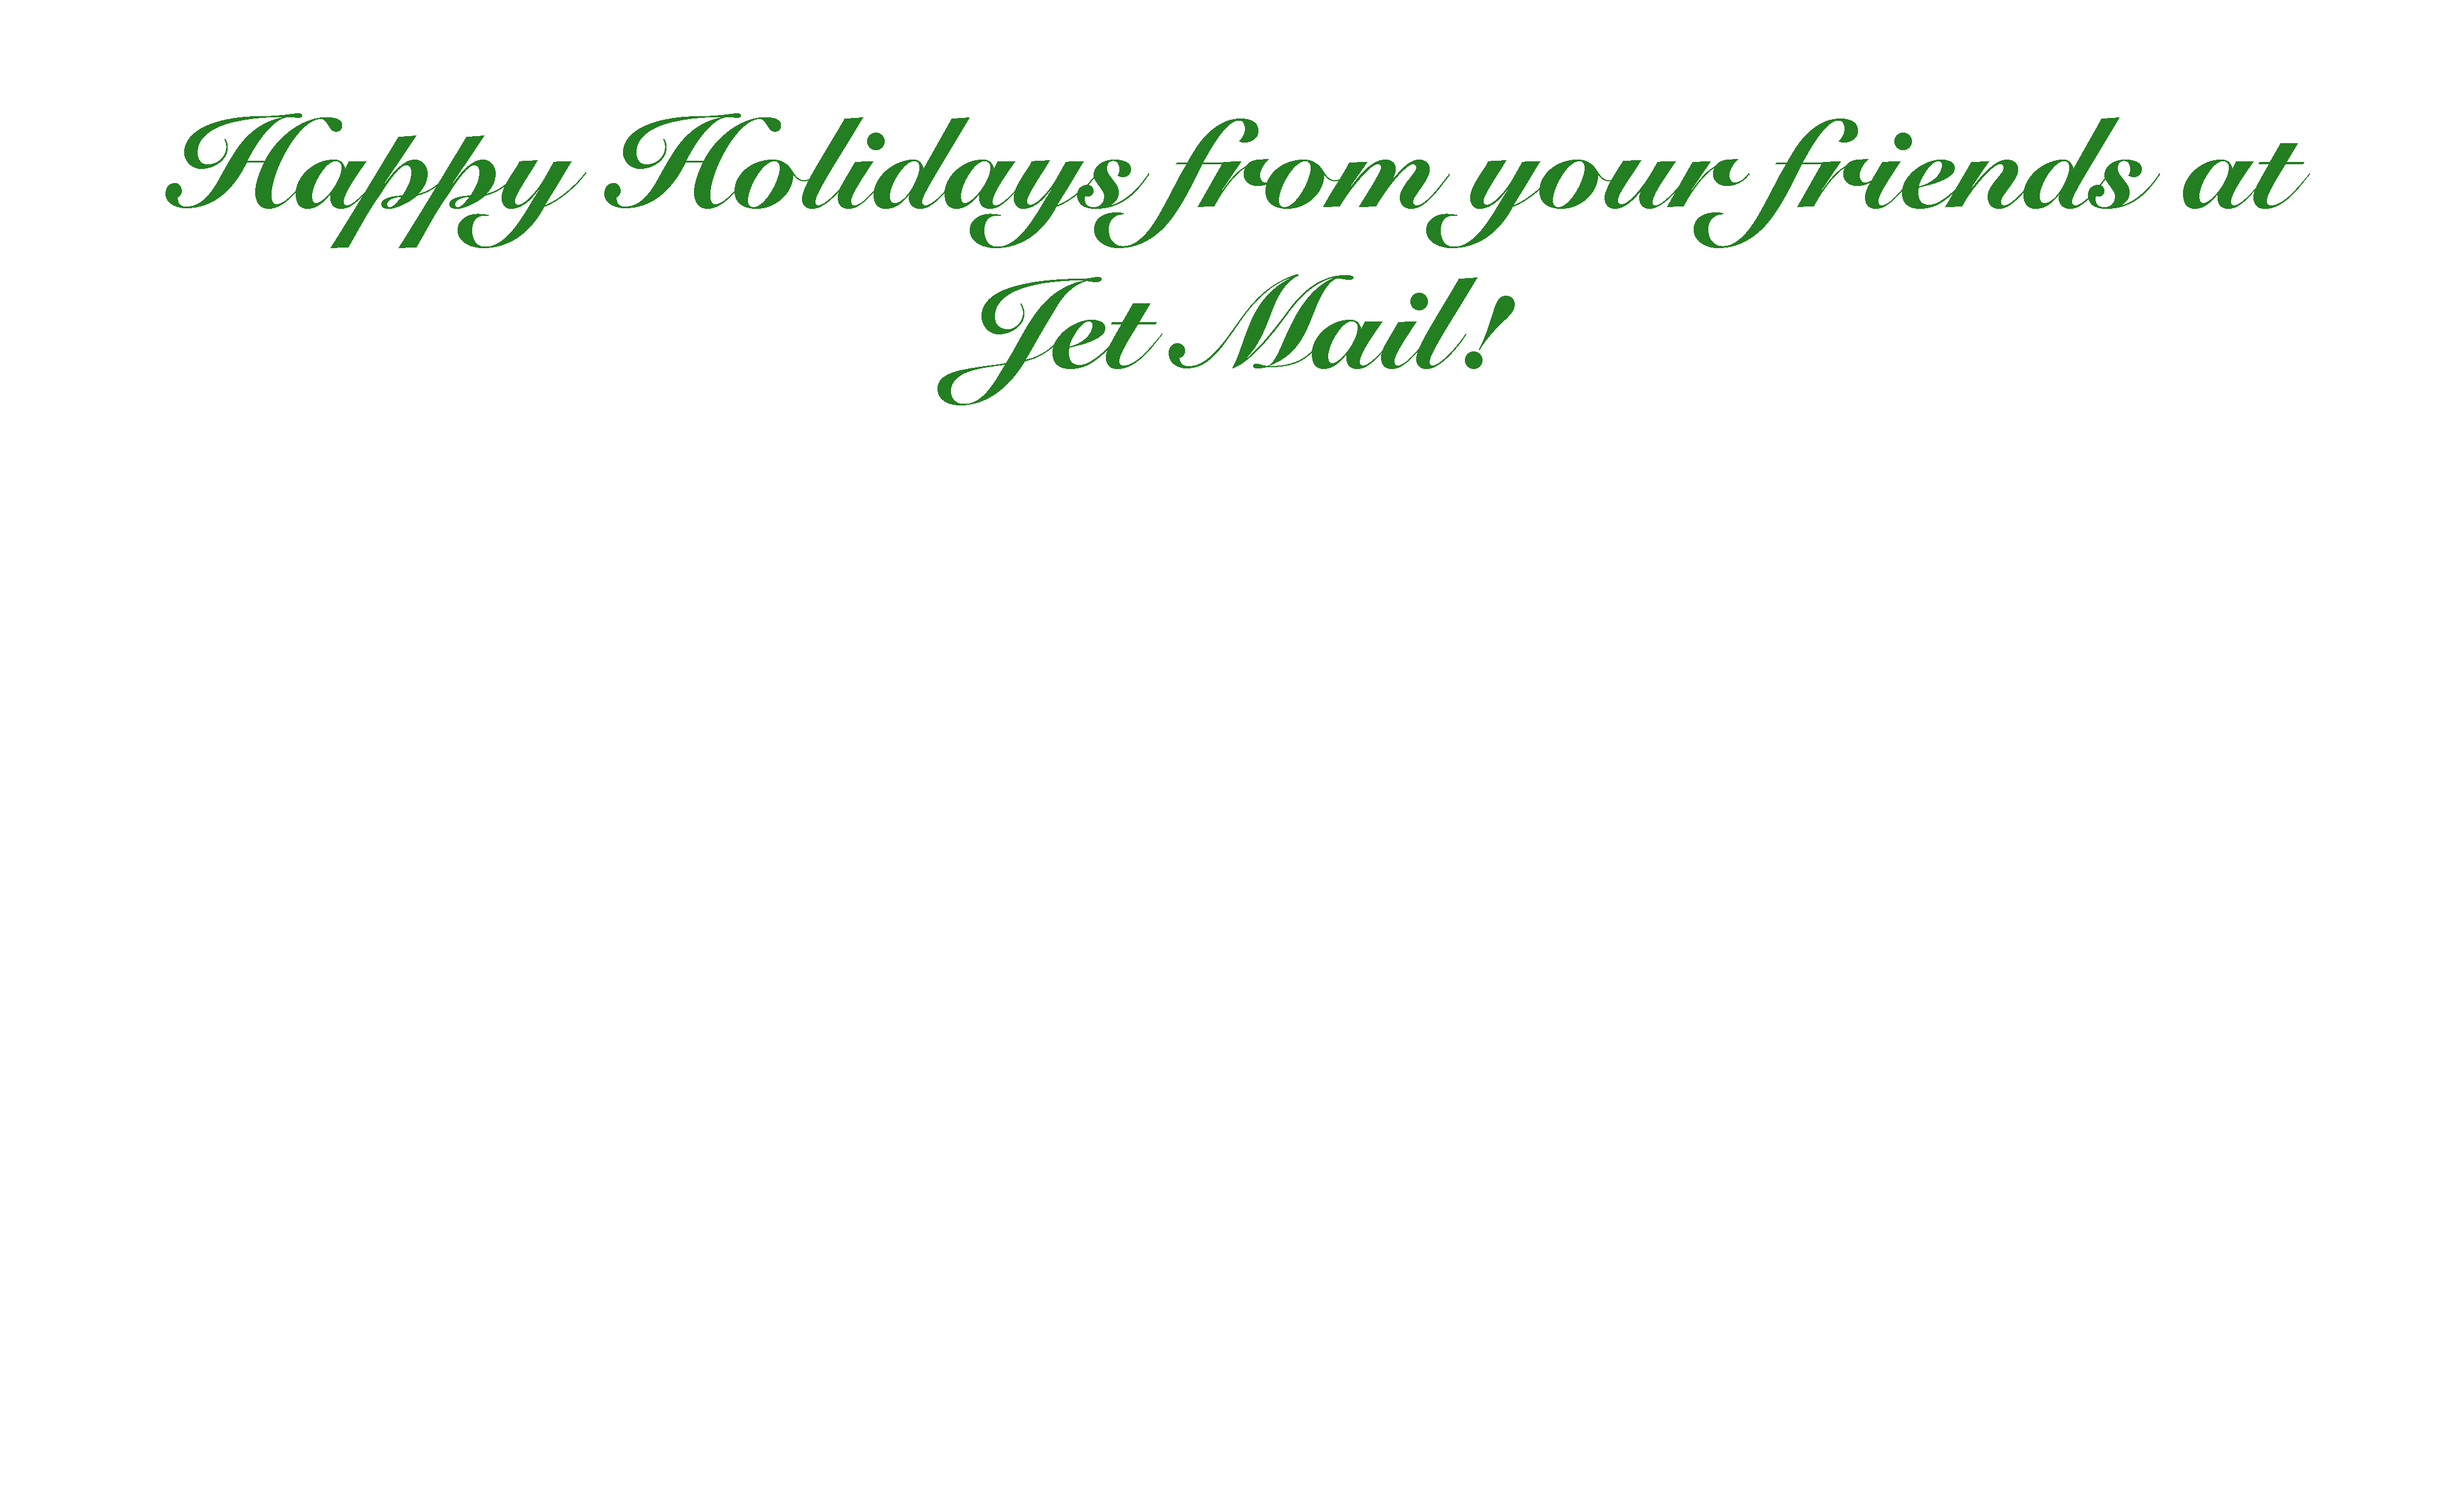 Happy Holidays from everyone at Jet Mail